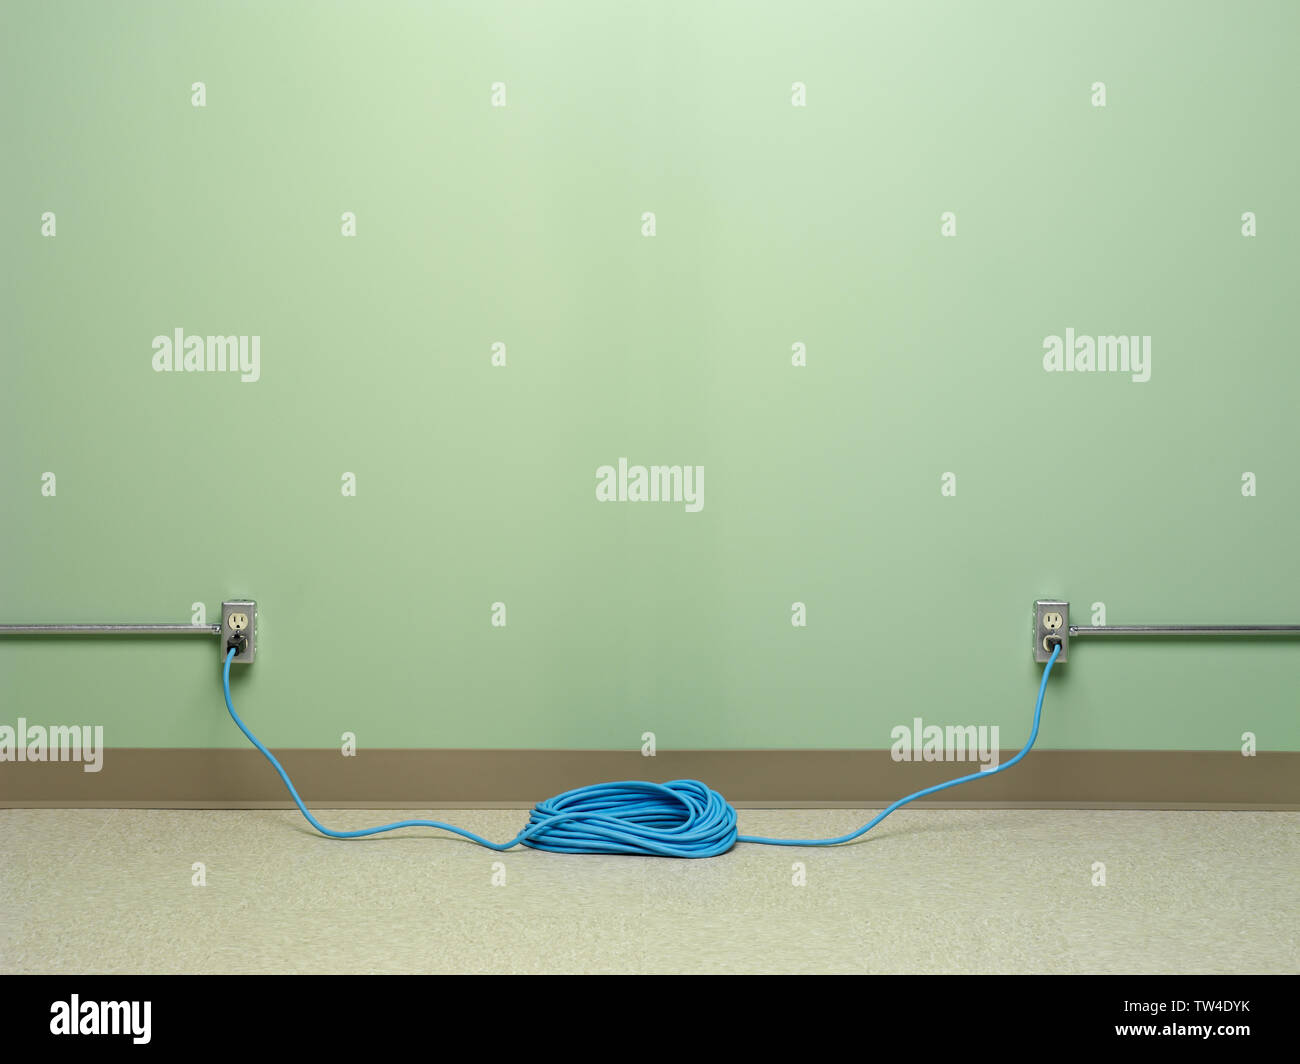 dangerous electrical wiring with blue coiled extension cord plugged into  two ac wall outlets on green